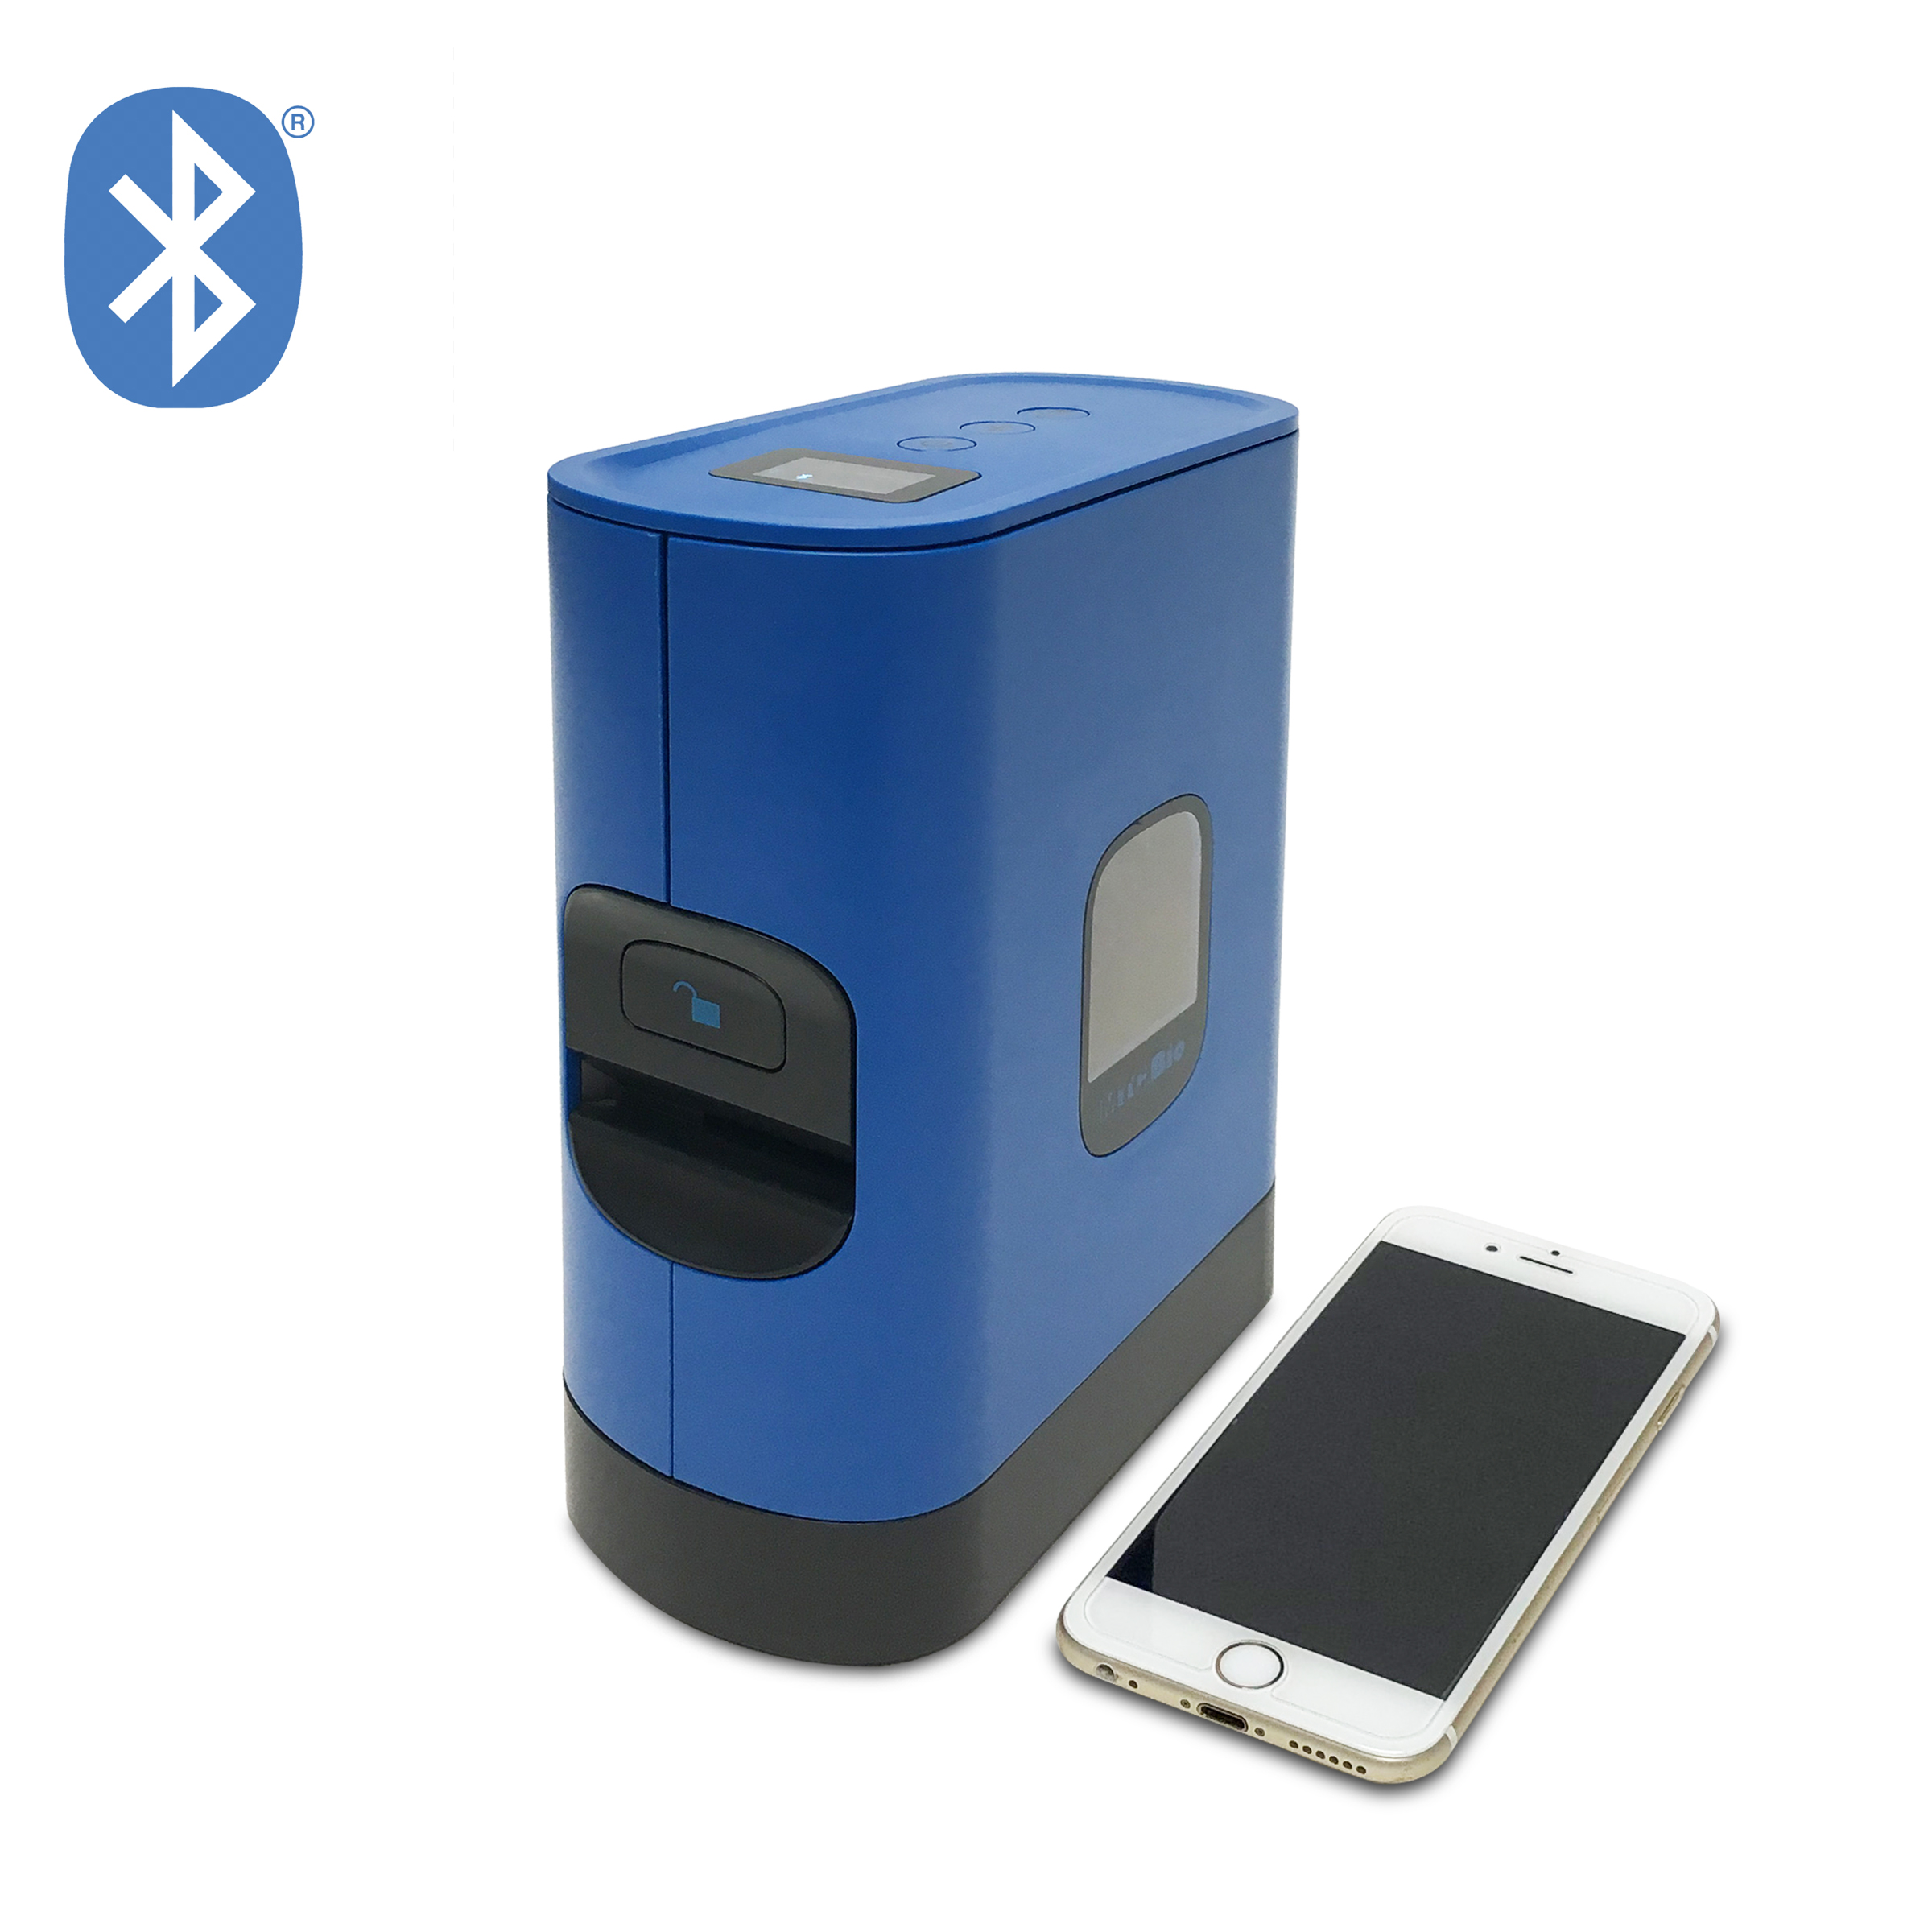 MTC-Bio LinkLabel Bluetooth Enabled Label Printer